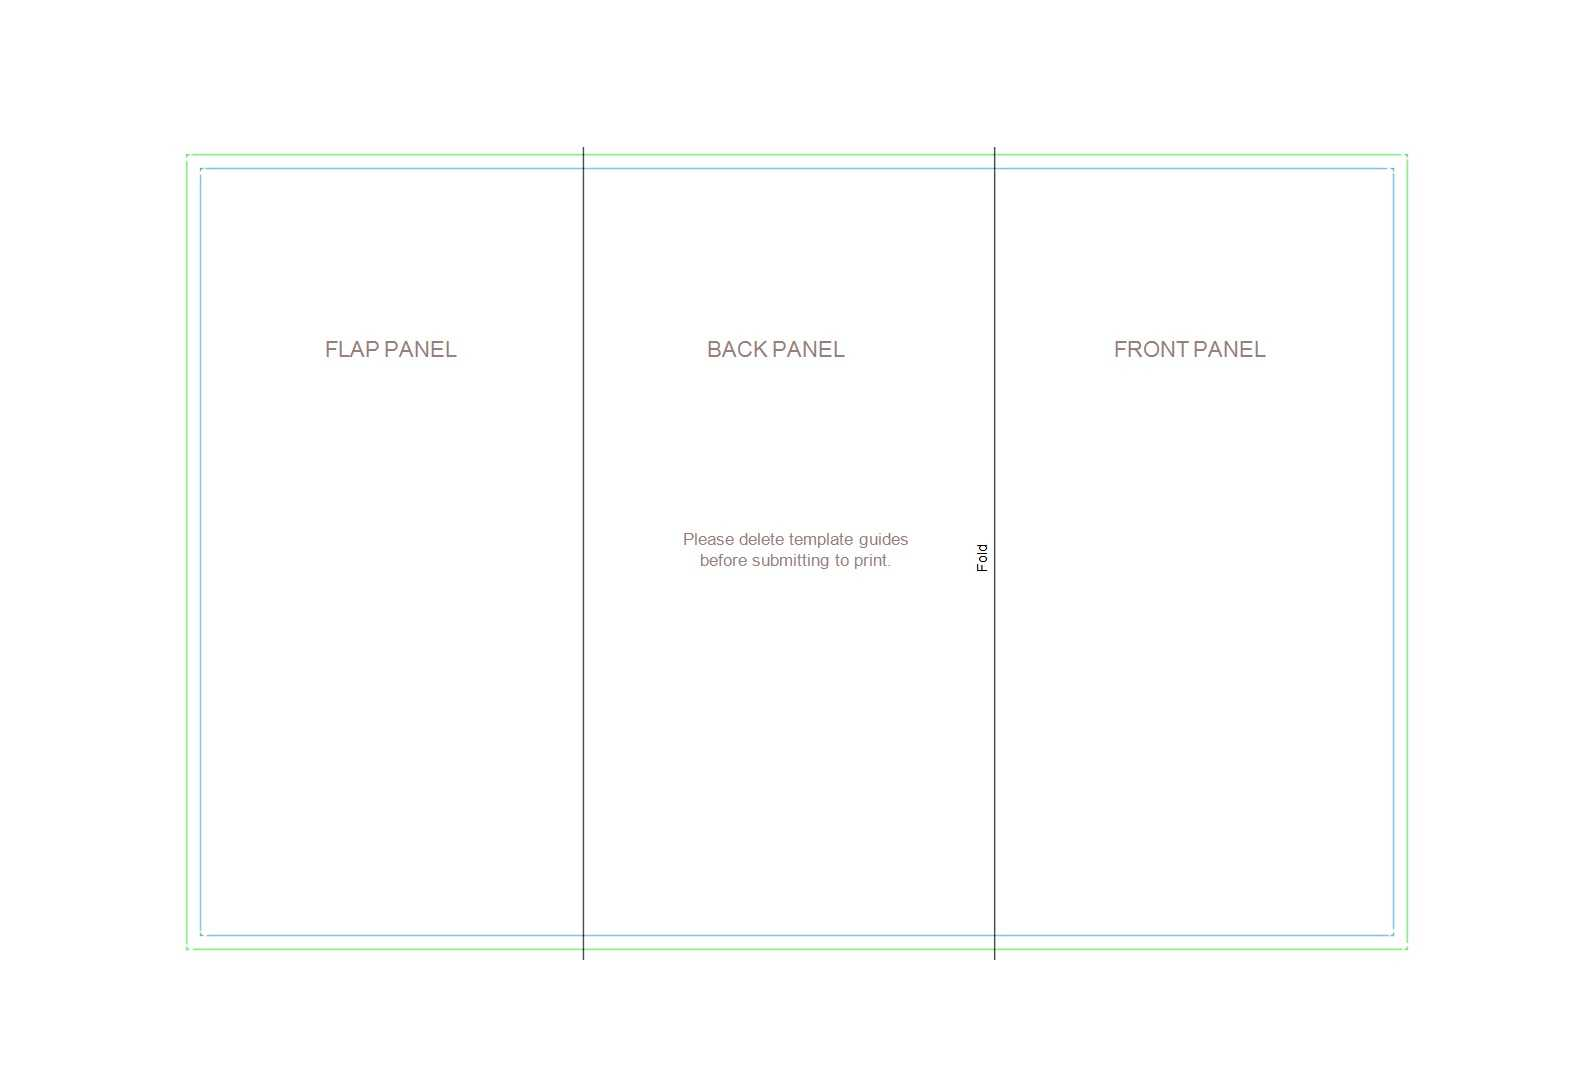 Pamphlet Template Docs - Dalep.midnightpig.co In Brochure Template Google Docs